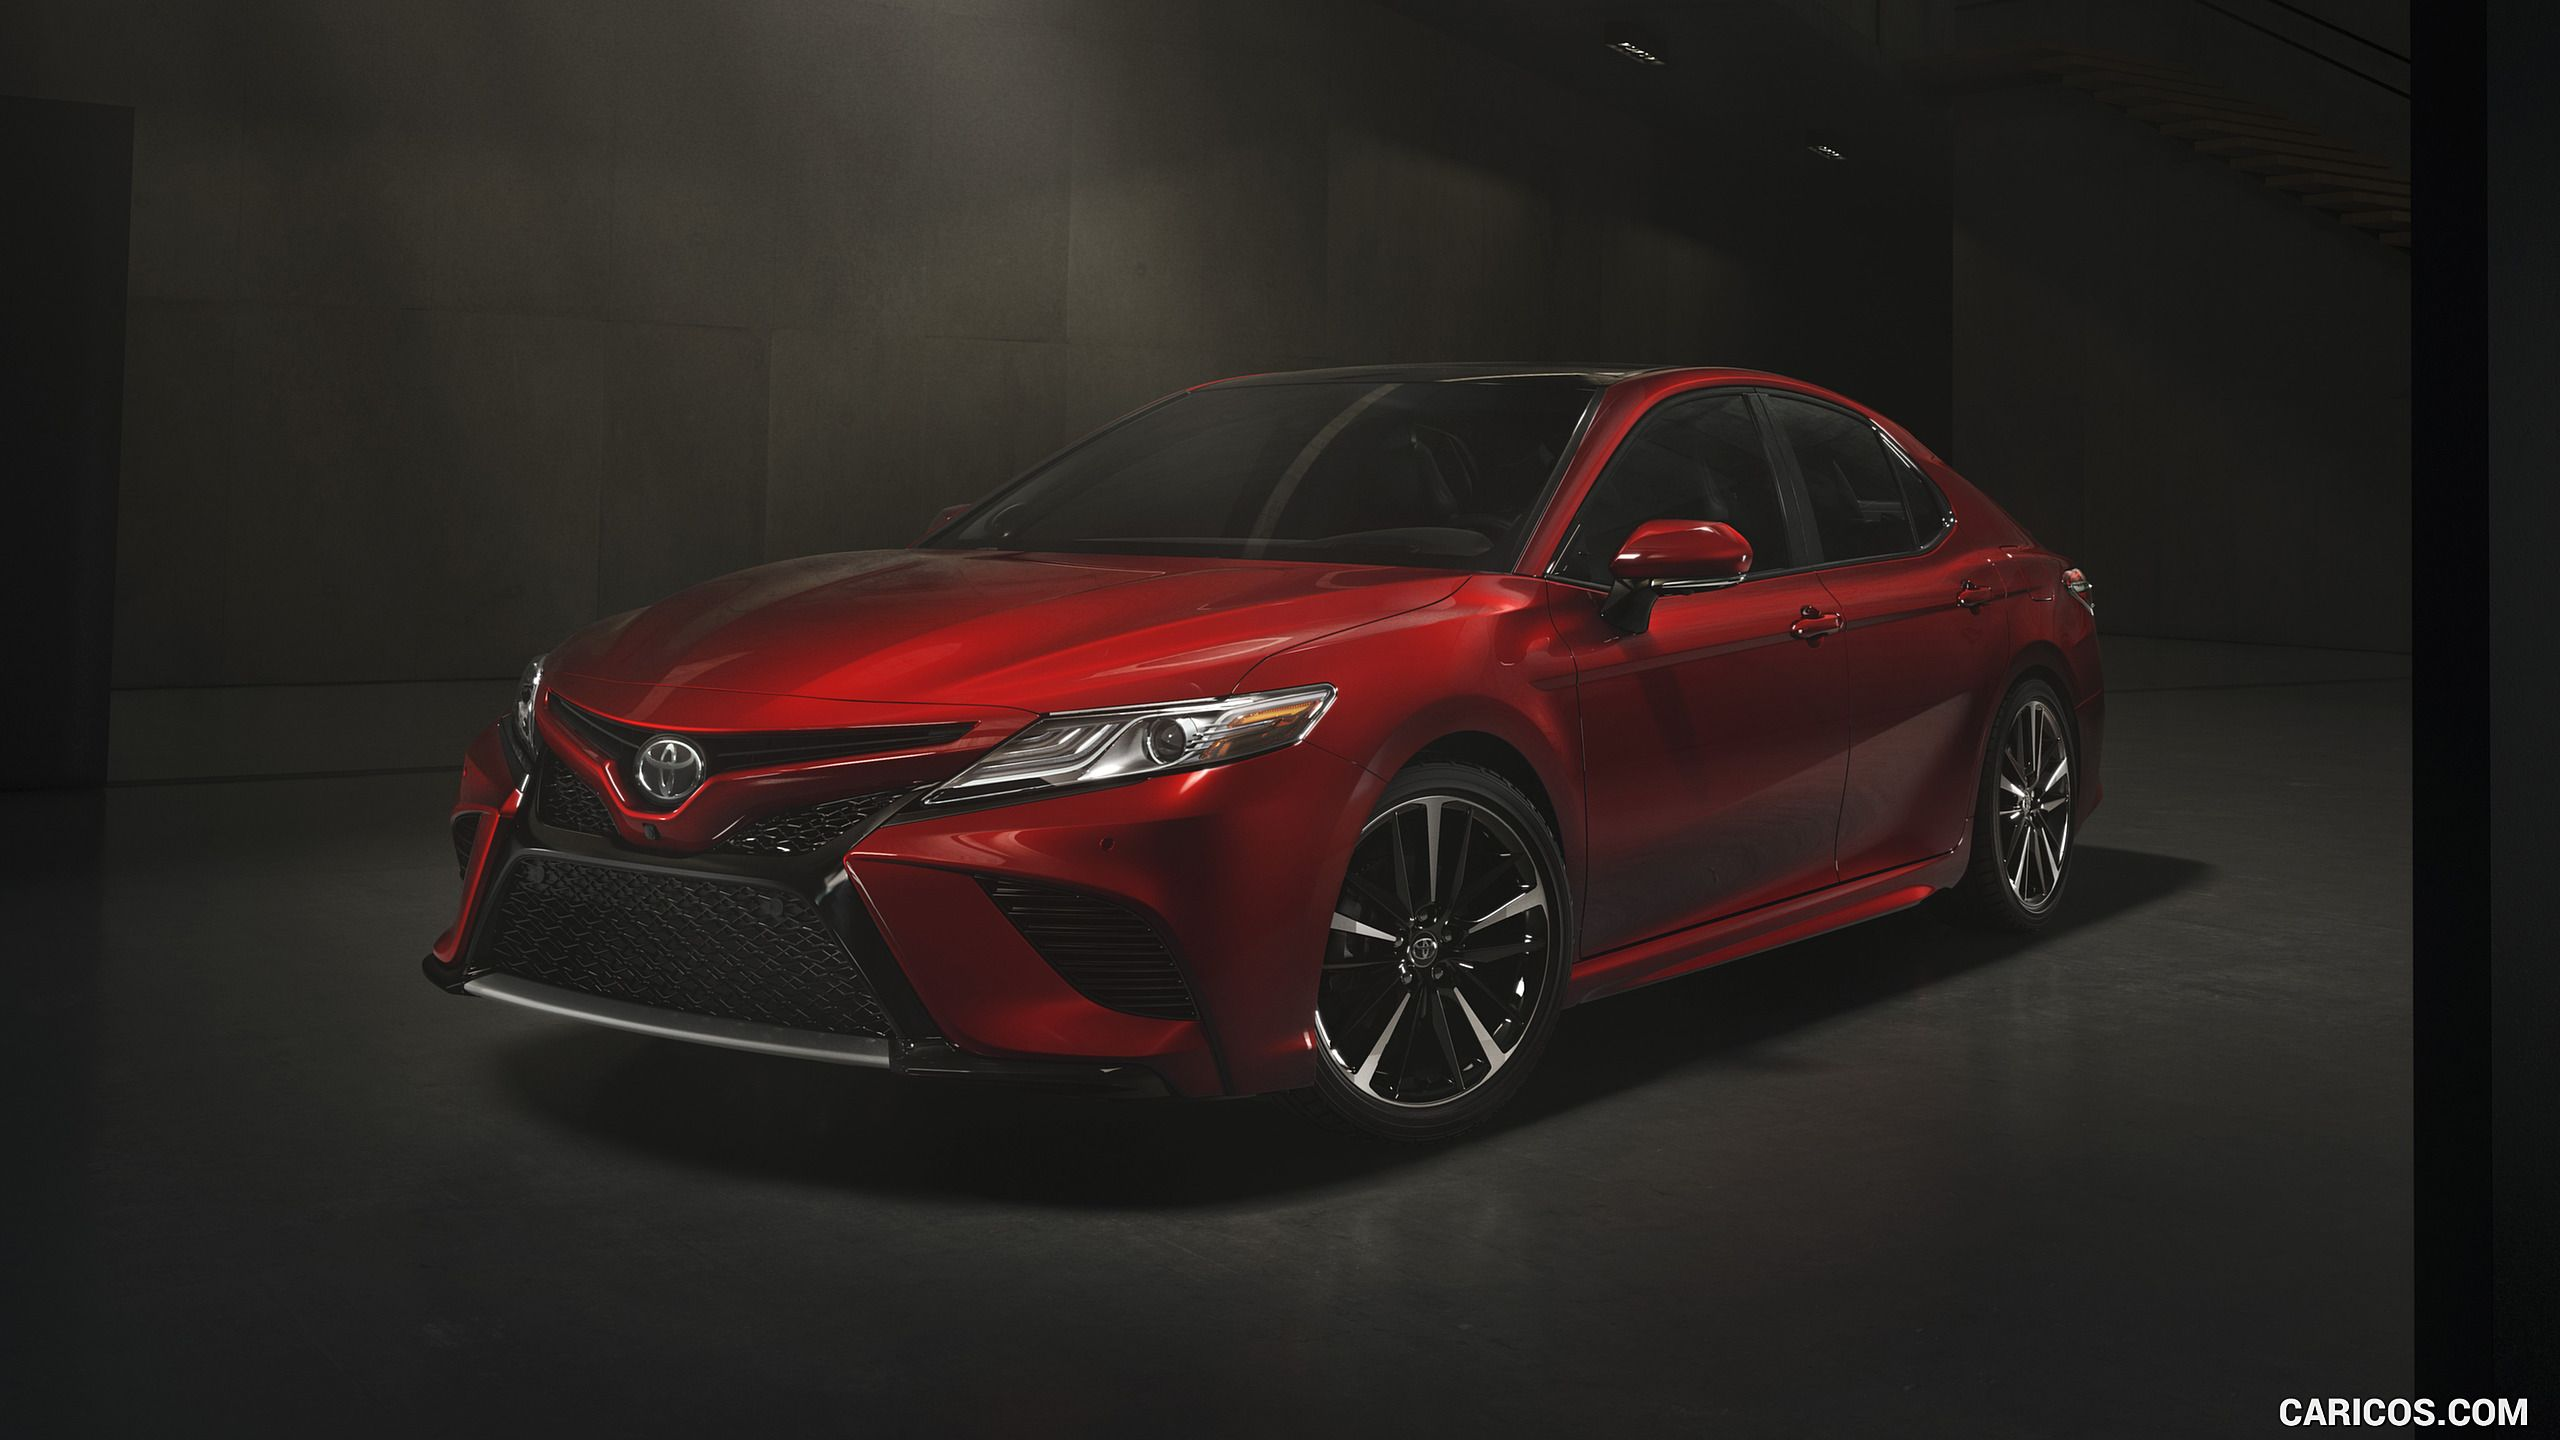 2018 Toyota Camry Wallpaper Camry se, Camry, Toyota camry